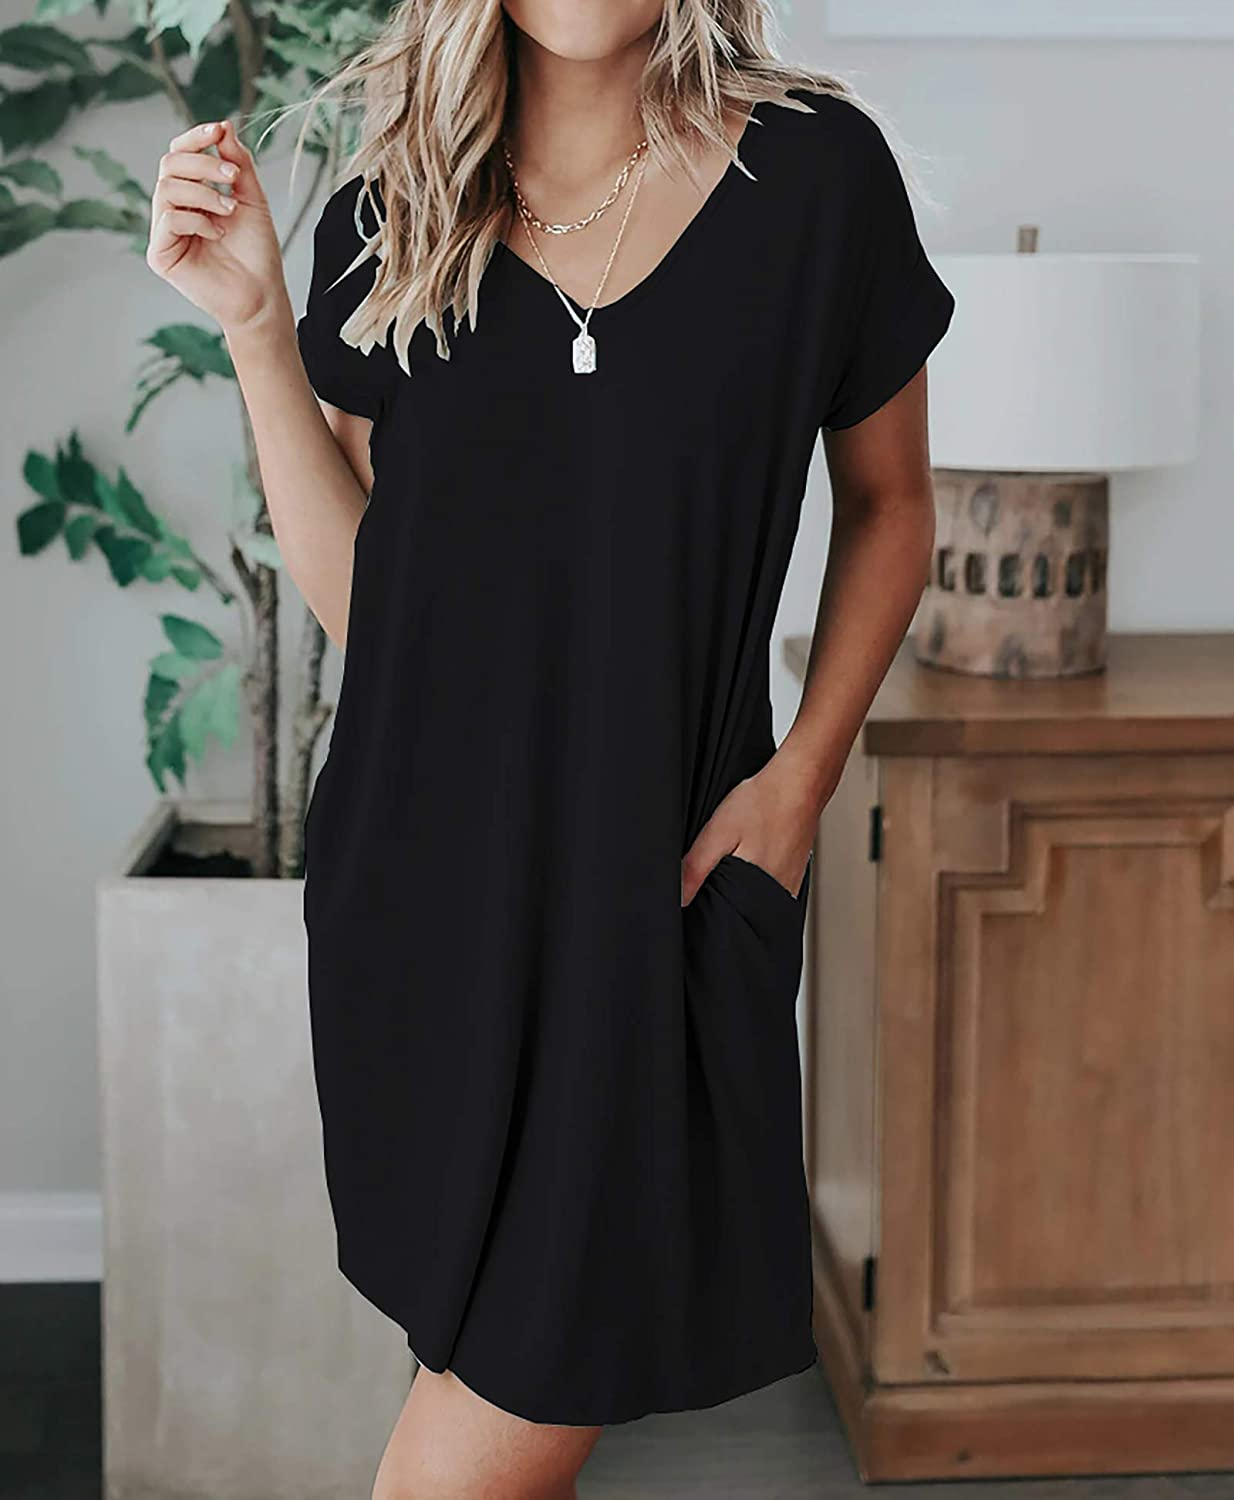 BTFBM Women V-Neck Short Sleeve Dresses Solid Color Casual Loose Fit T-Shirt Tunic Short Dress Pajamas with Pockets